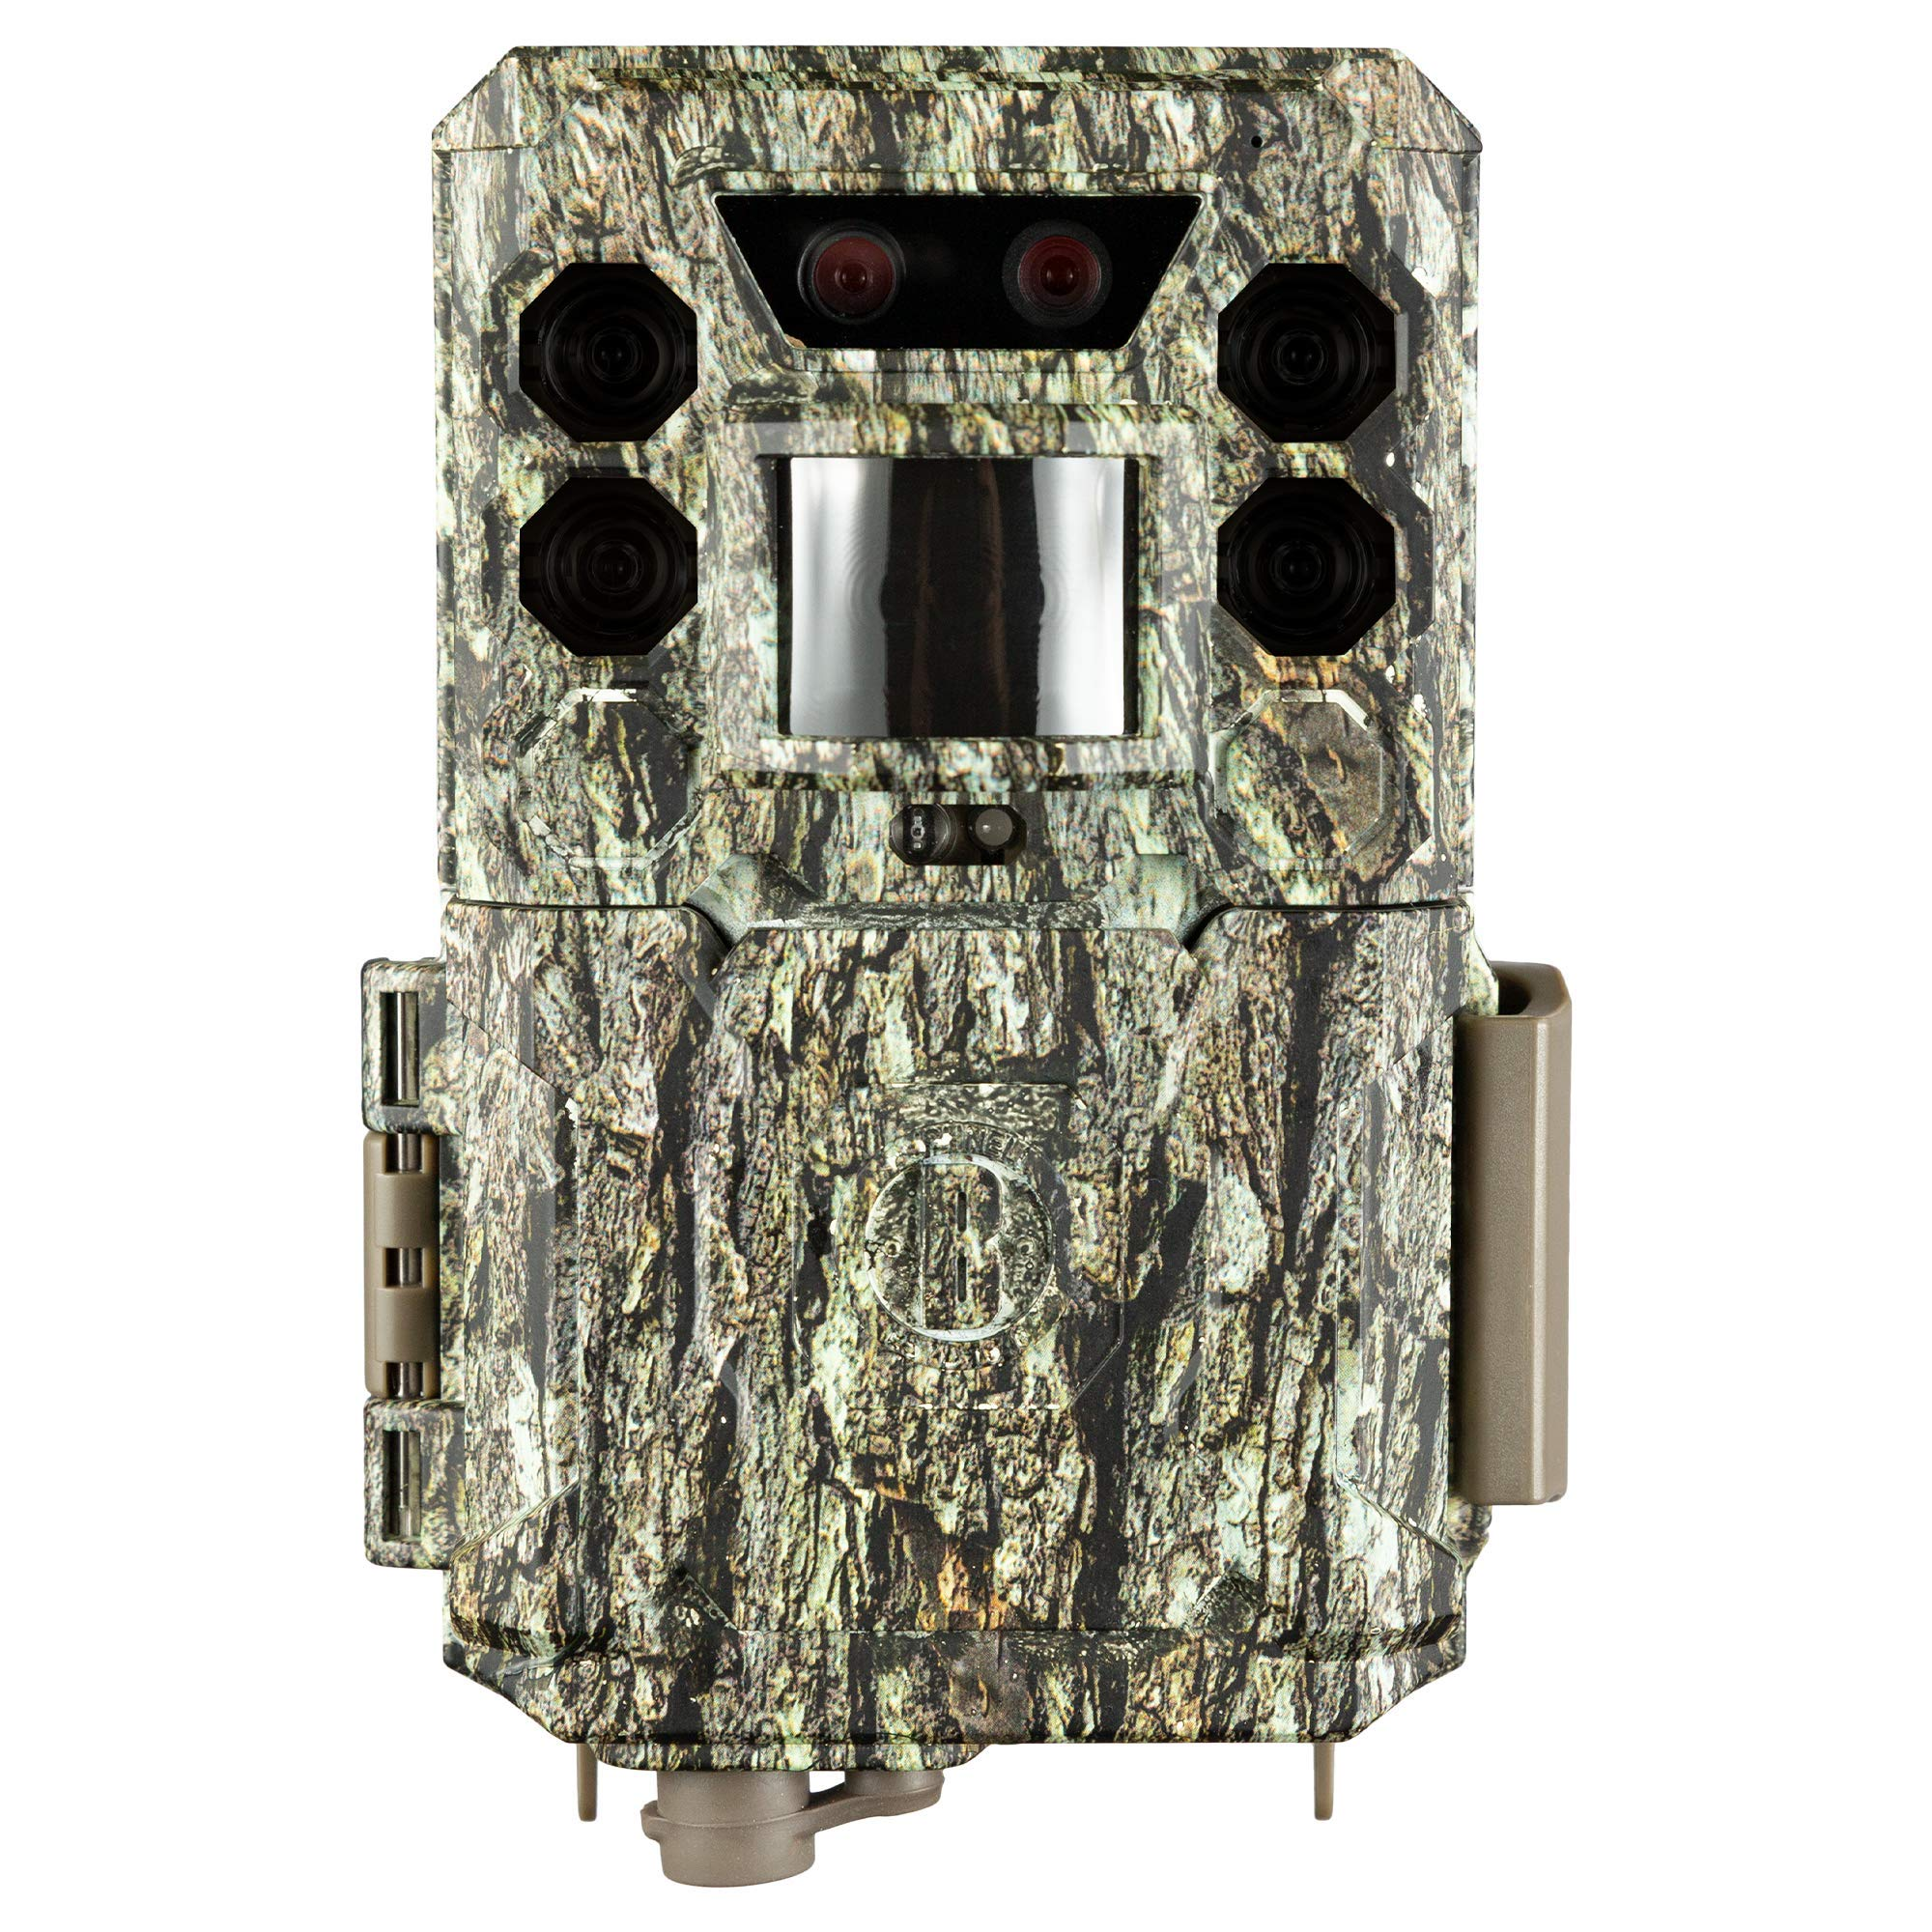 Bushnell 30MP CORE Trail Camera, Dual Sensor, no Glow_119977C by Bushnell by Primos